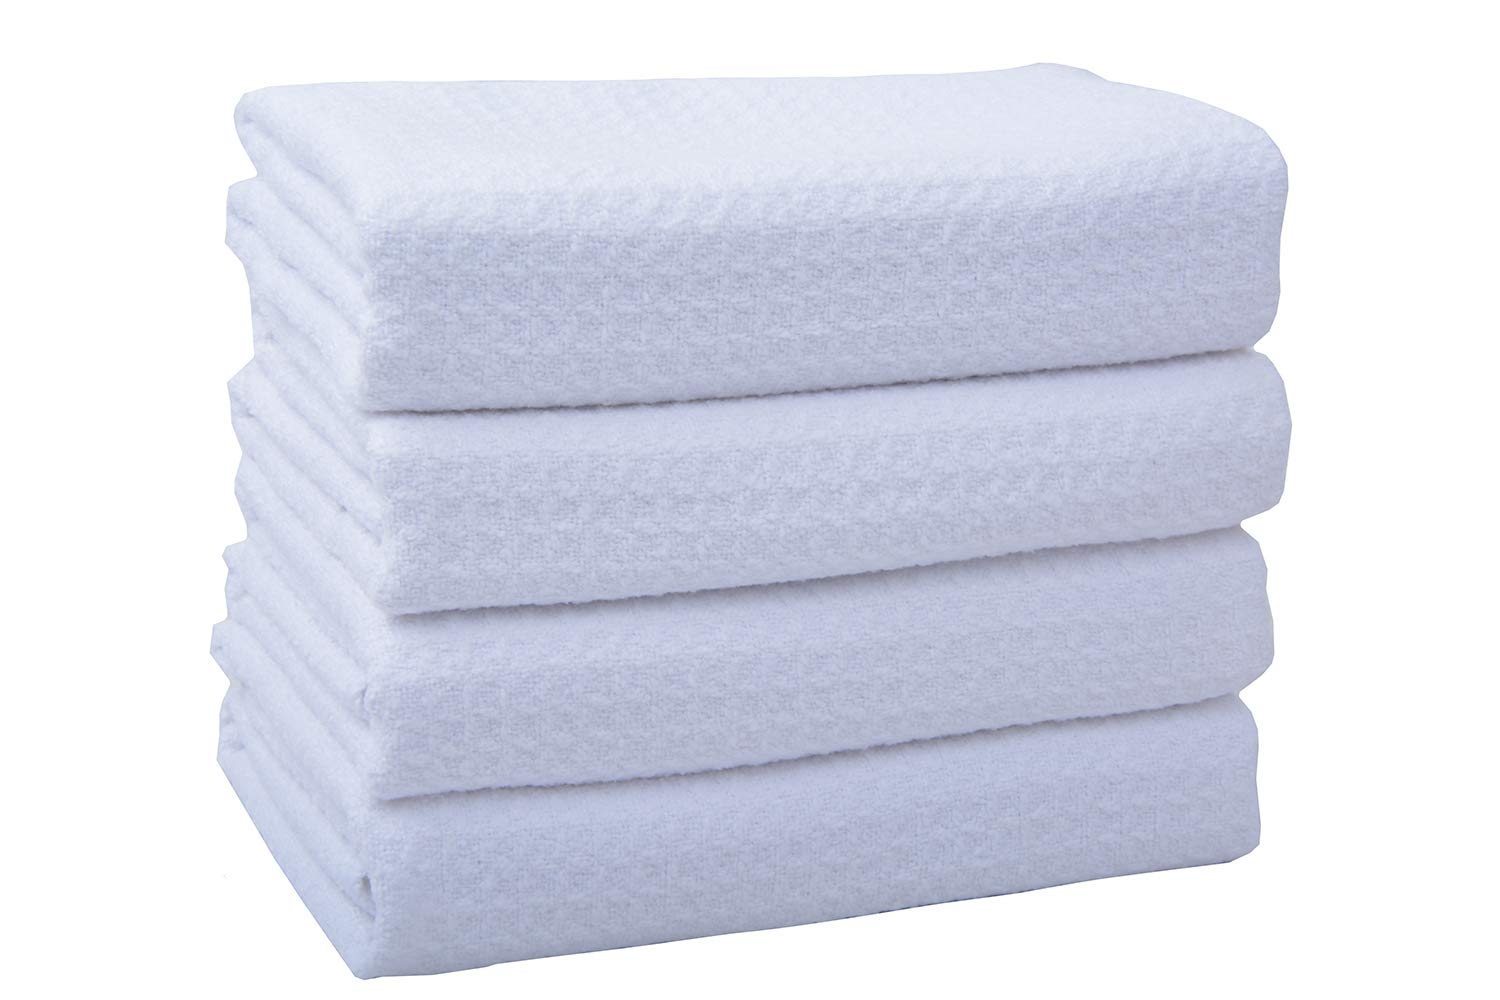 VIVOTE Waffle Weave Towel, 4 Pack 16 Inch X 24 Inch, White Microfiber Kitchen Towel, Dish Towel Ultra Soft Super Absorbent Fast Drying Machine Washable